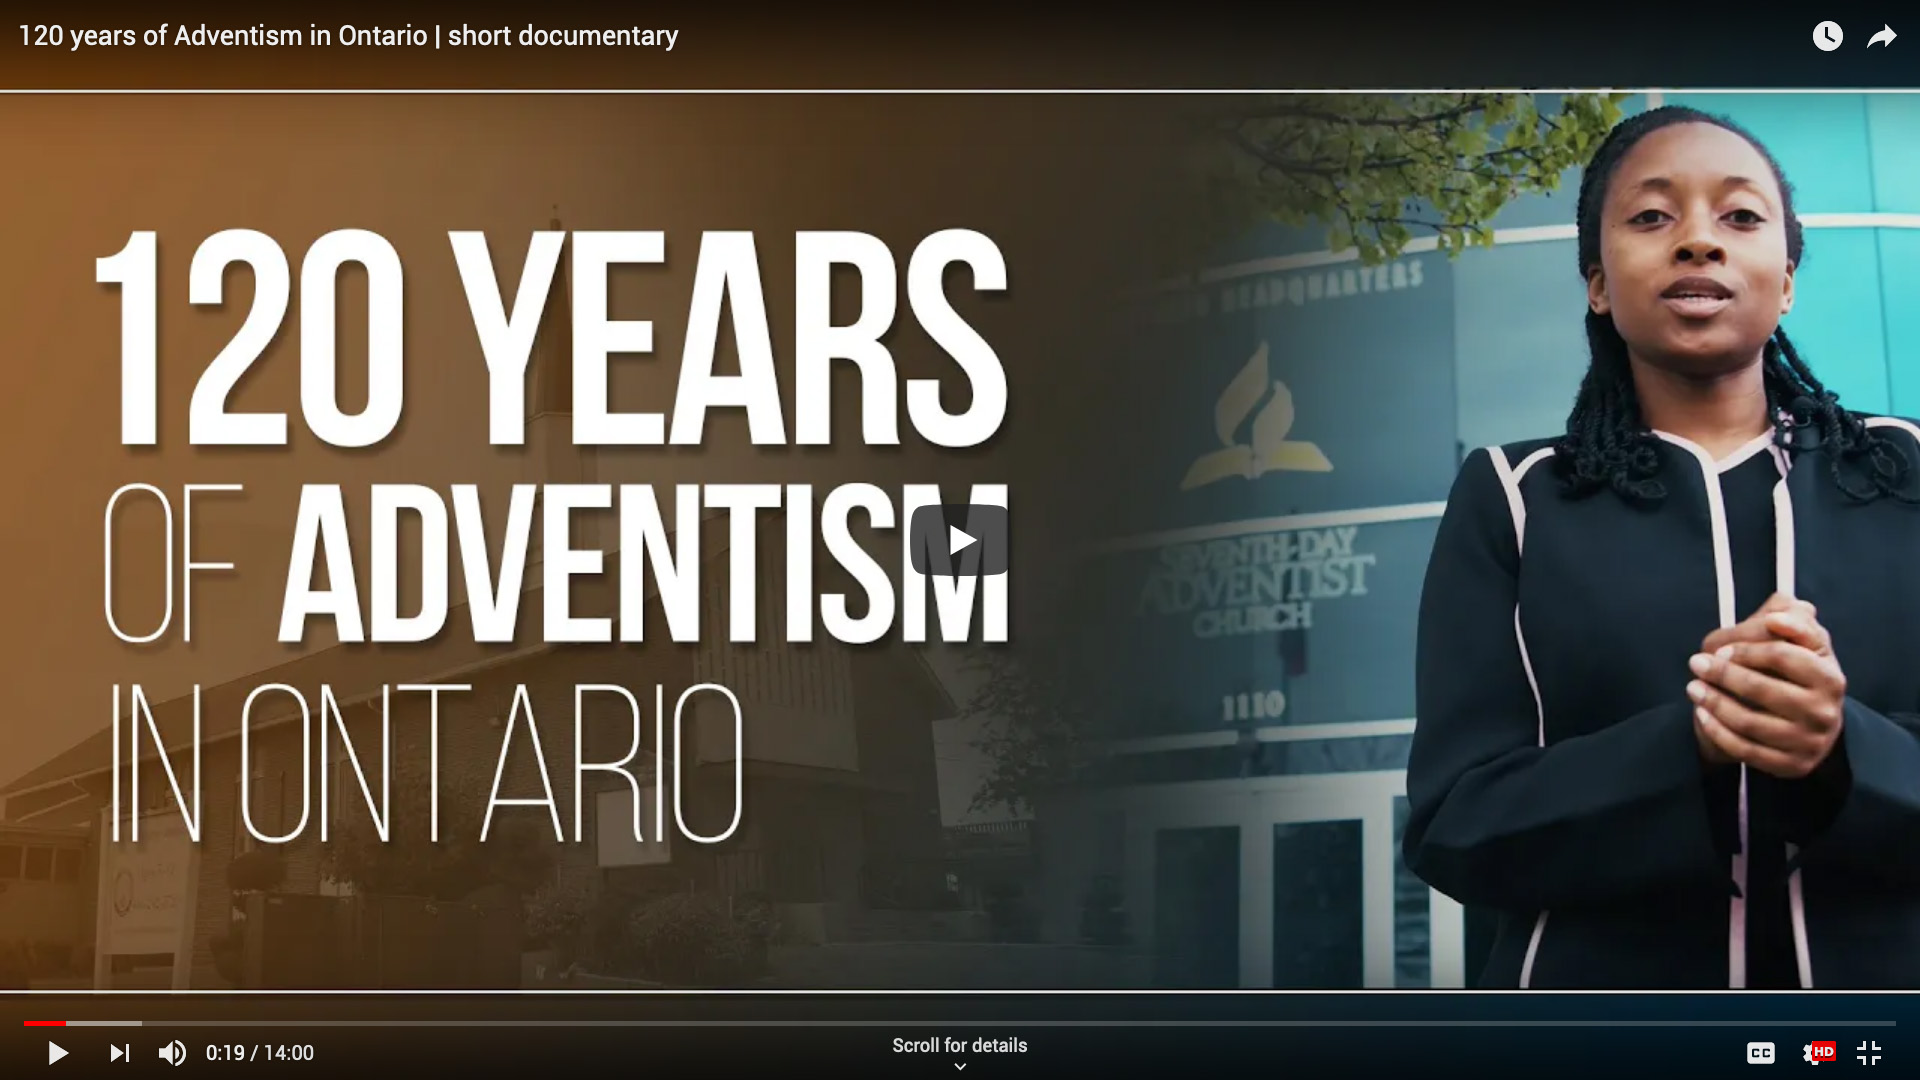 120 Years of Adventism in Ontario